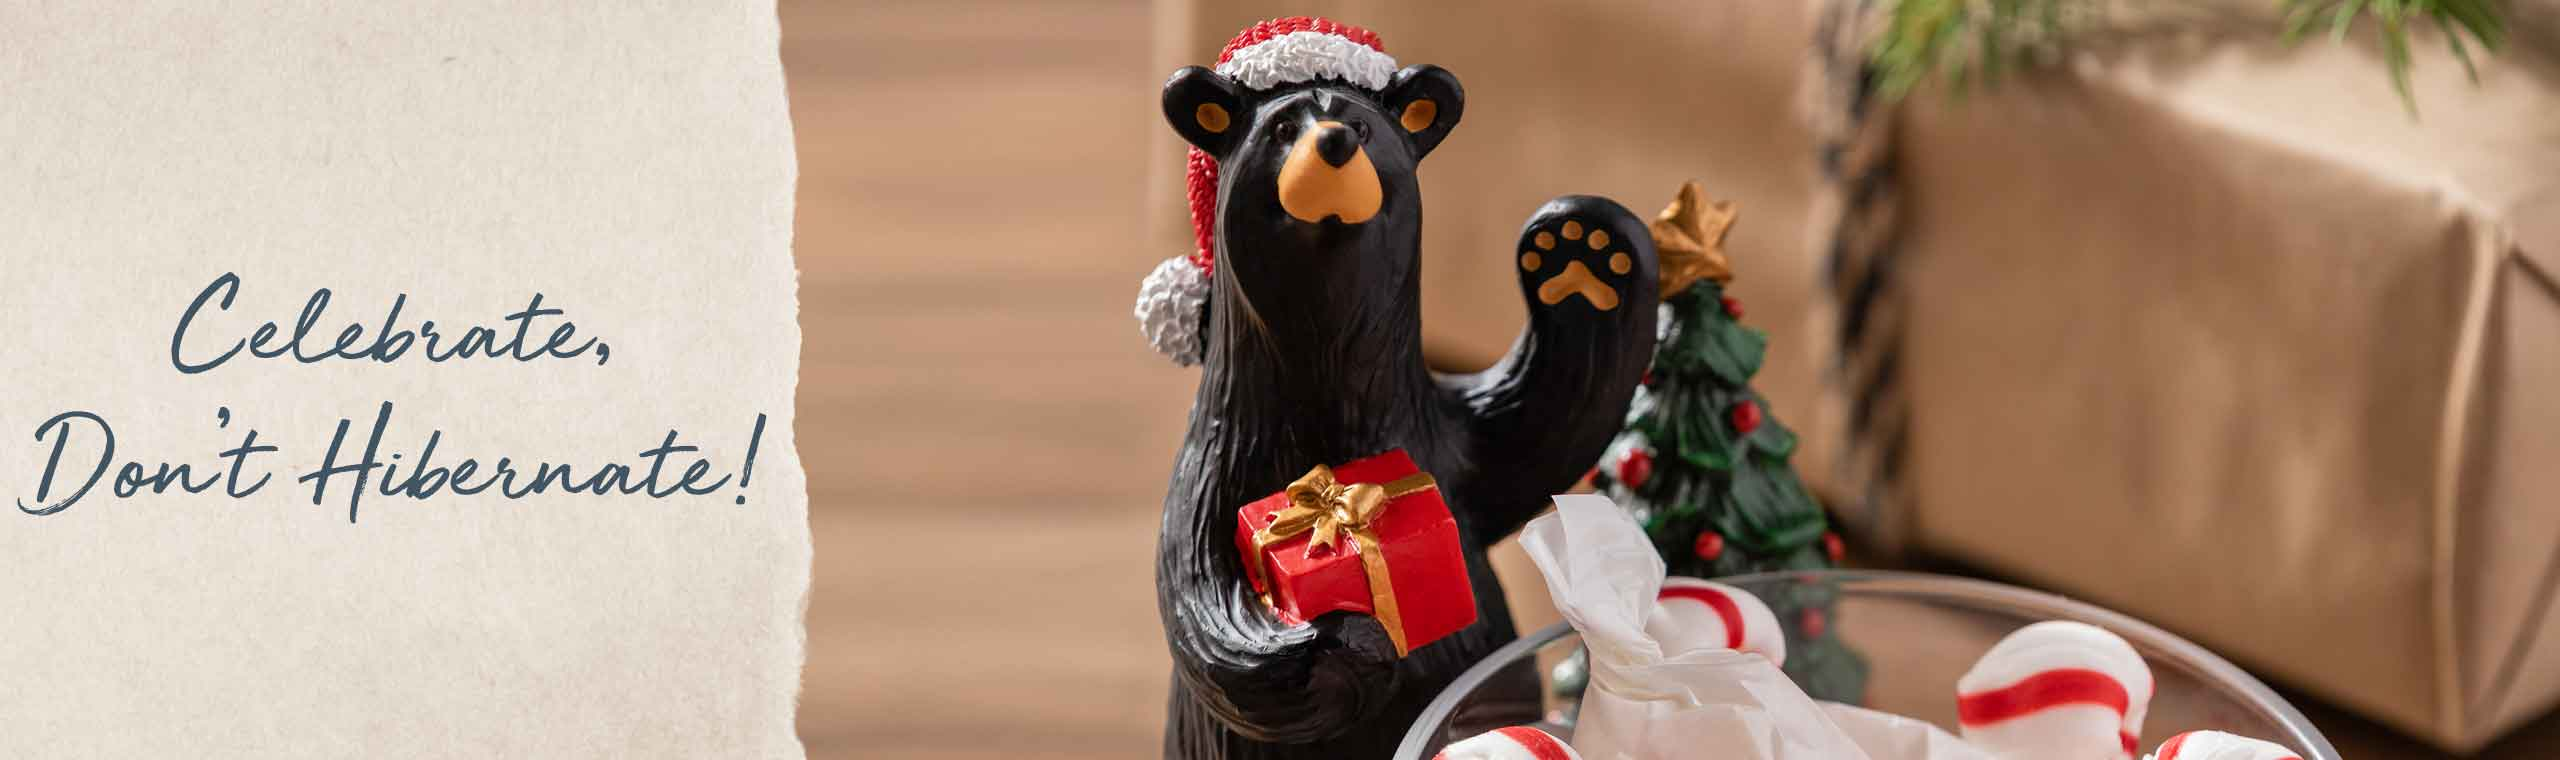 Celebrate, Don't Hibernate! a Black bear holding up their paw with a christmas hat on